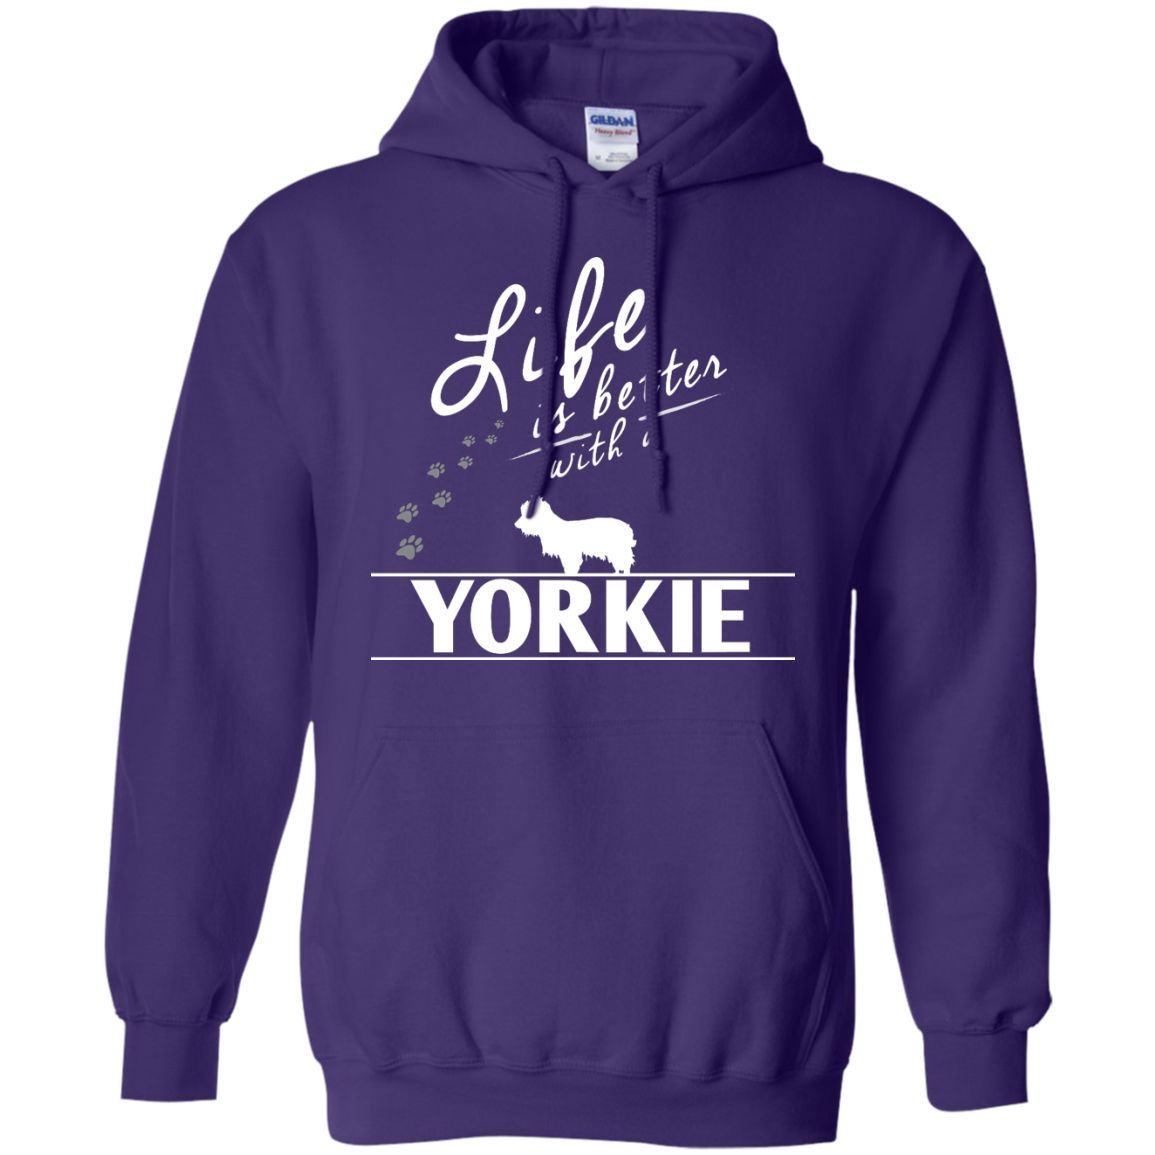 Yorkshire - Life Is Better With A Yorkshire - Pullover Hoodie 8 oz